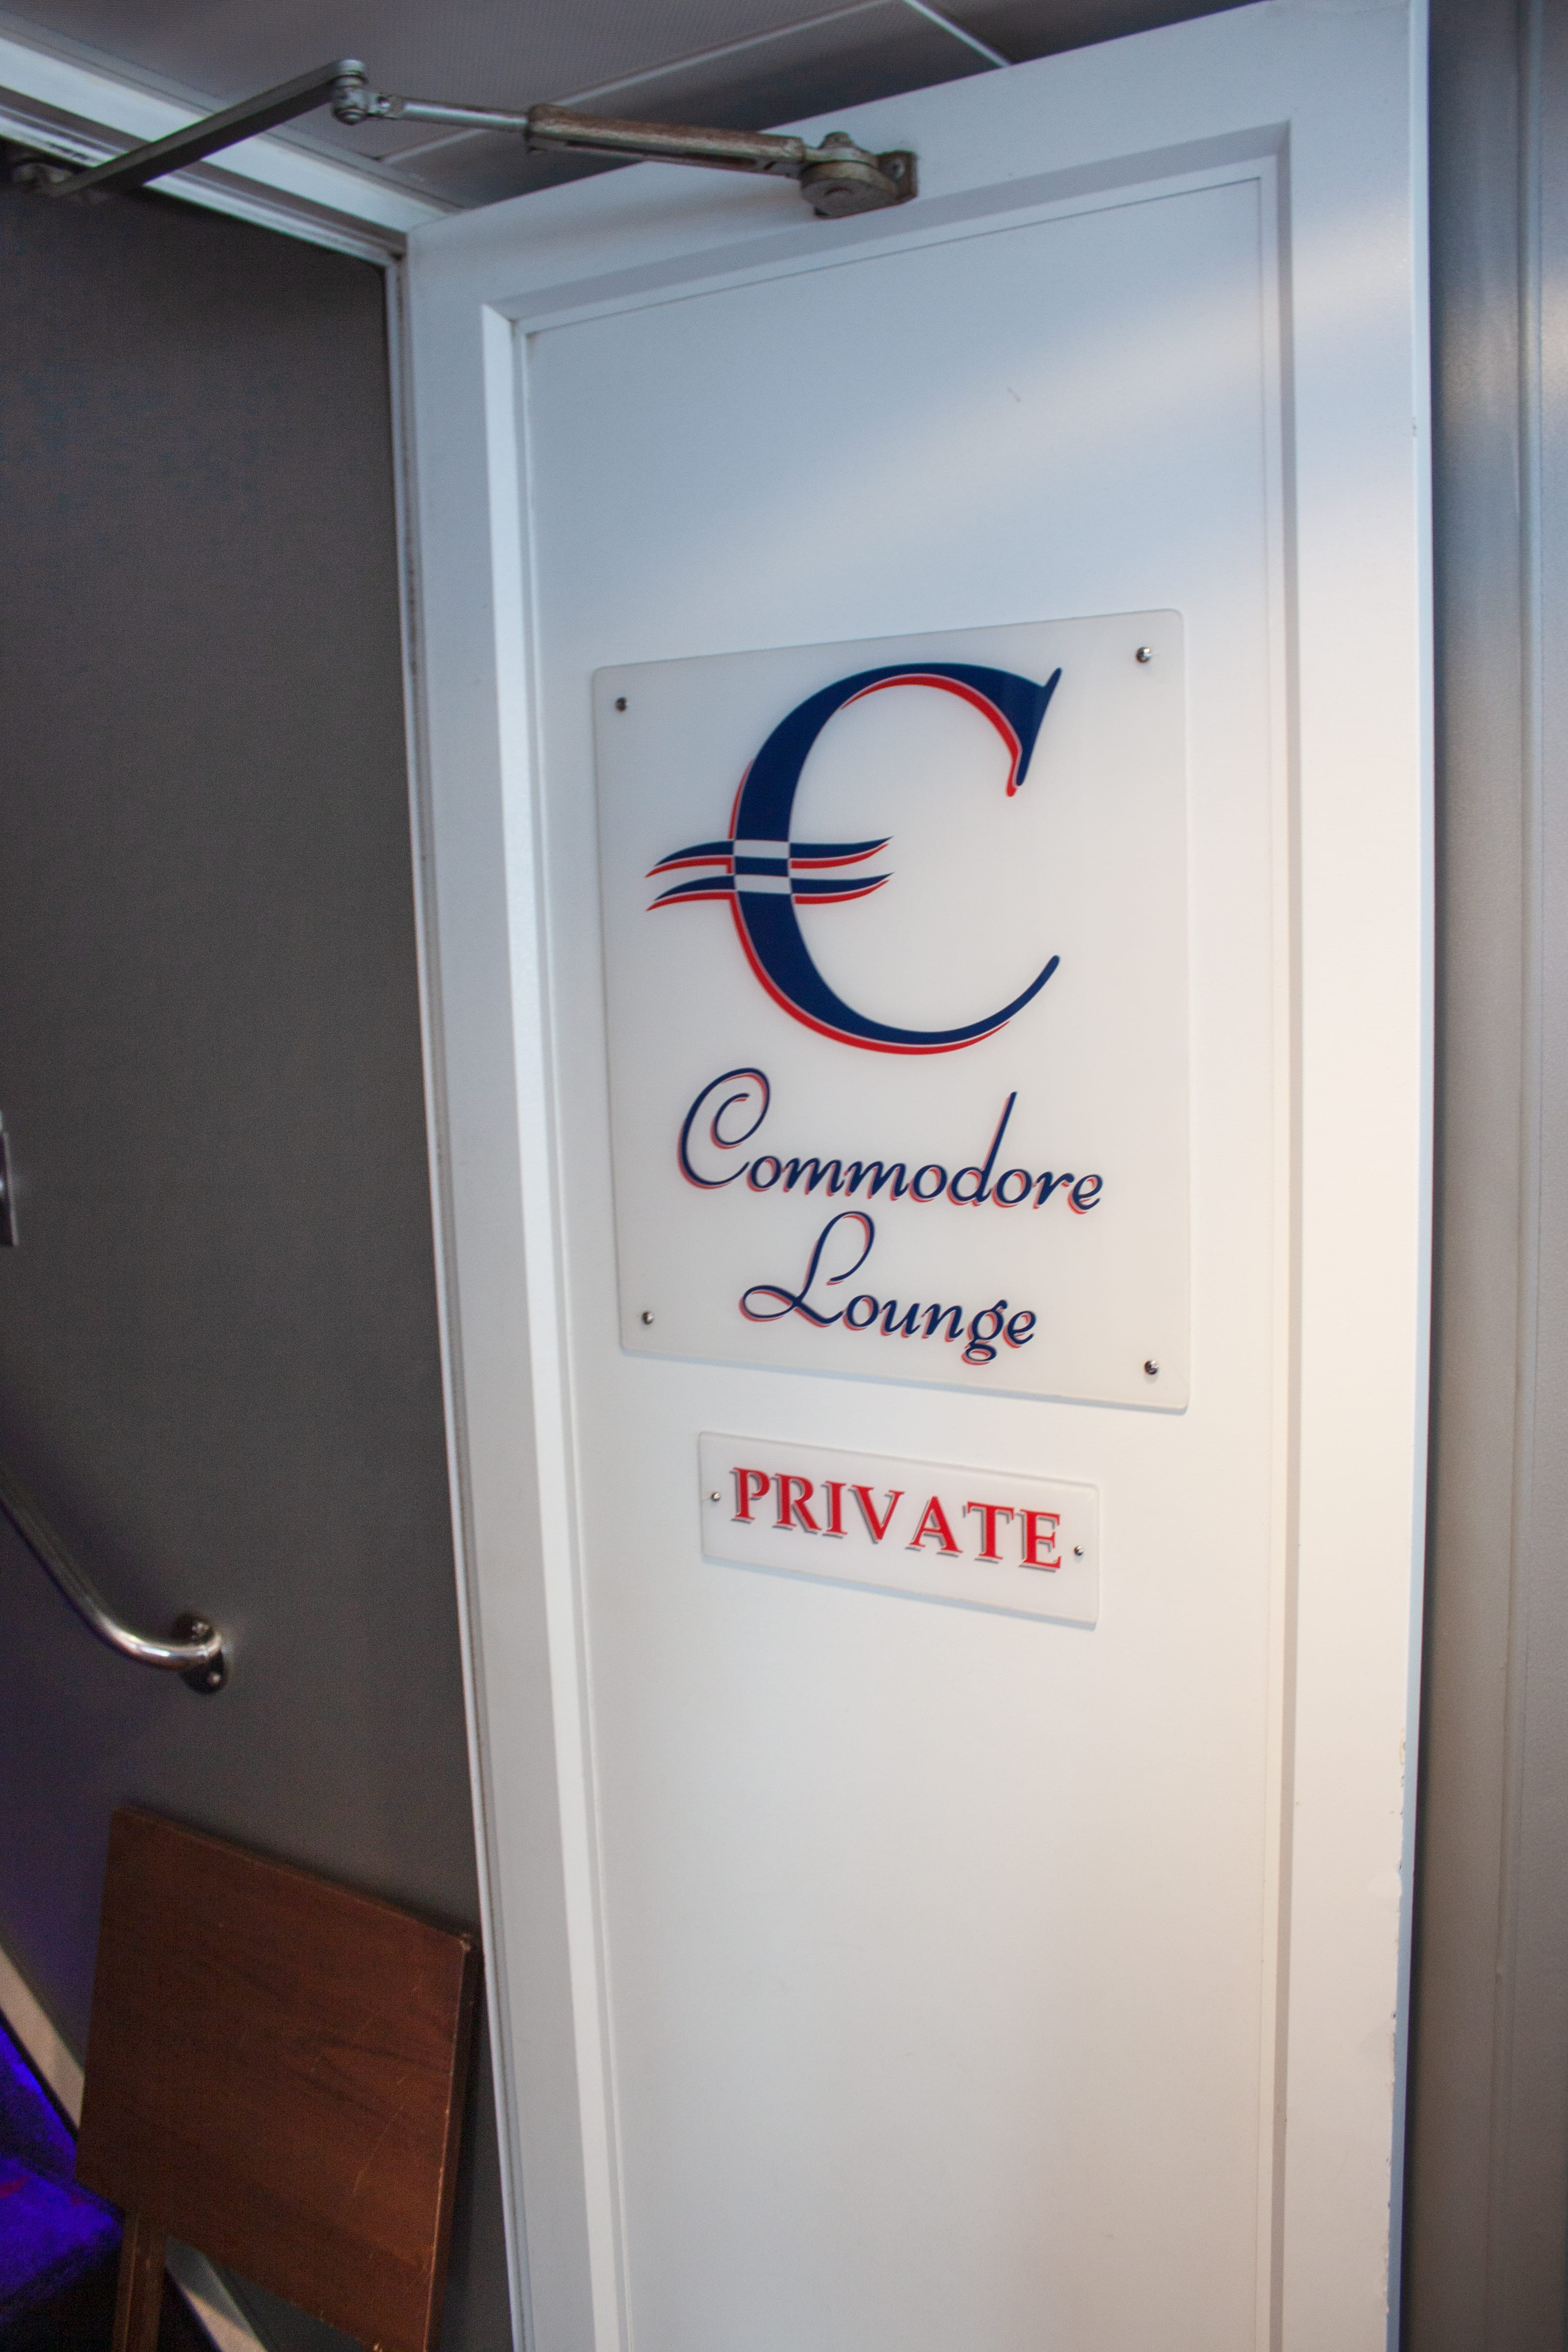 Commodore lounge entrance